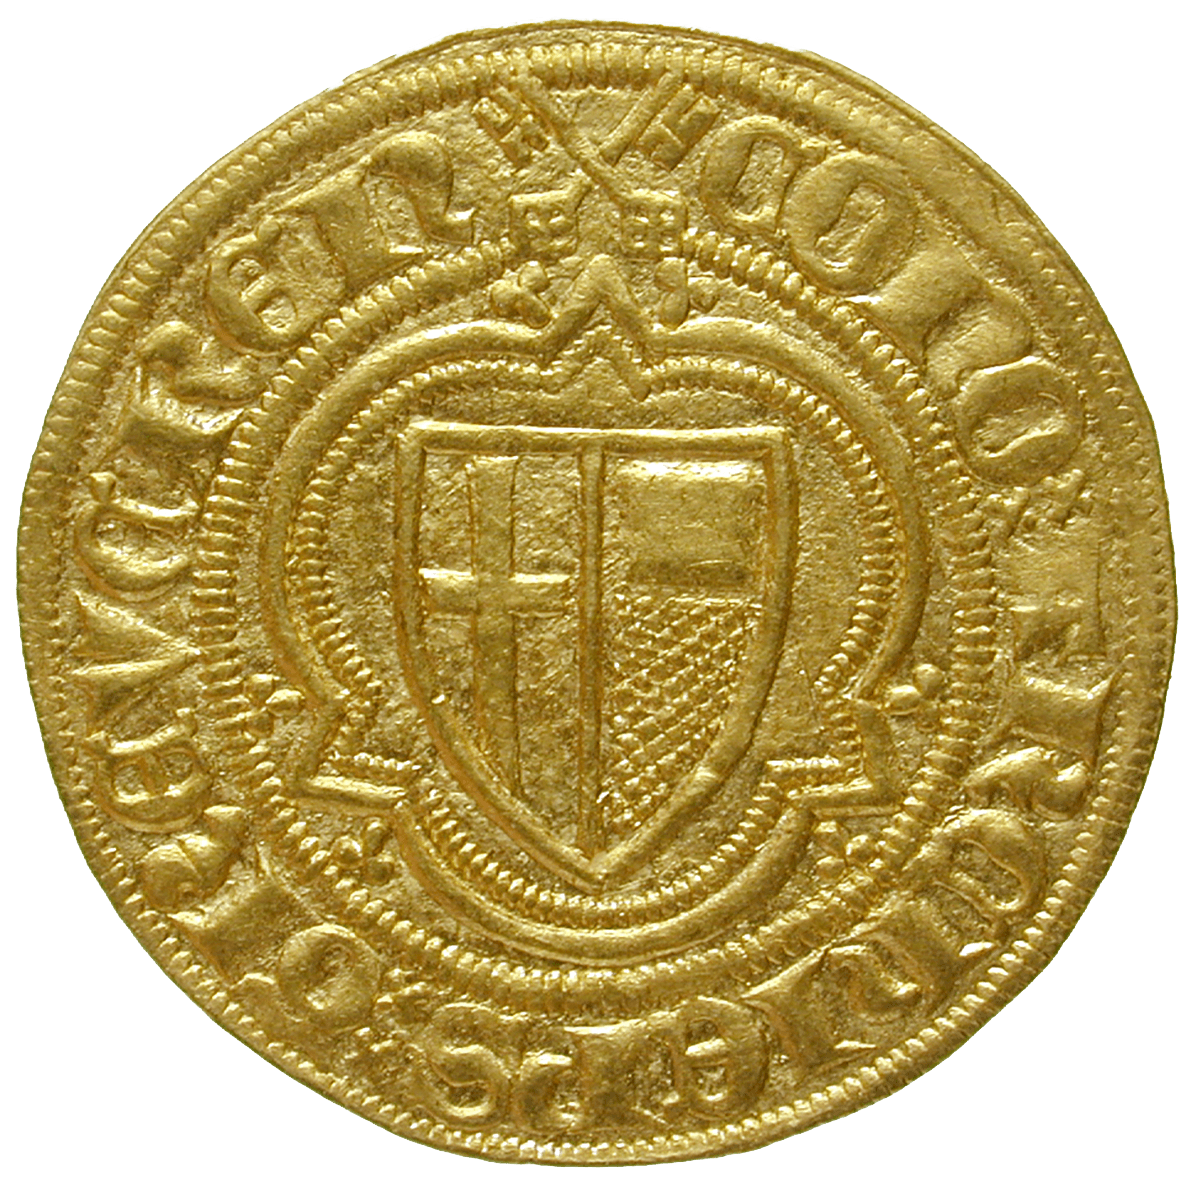 Holy Roman Empire, Archbishopric of Treves, Kuno II of Falkenstein, Goldgulden (obverse)